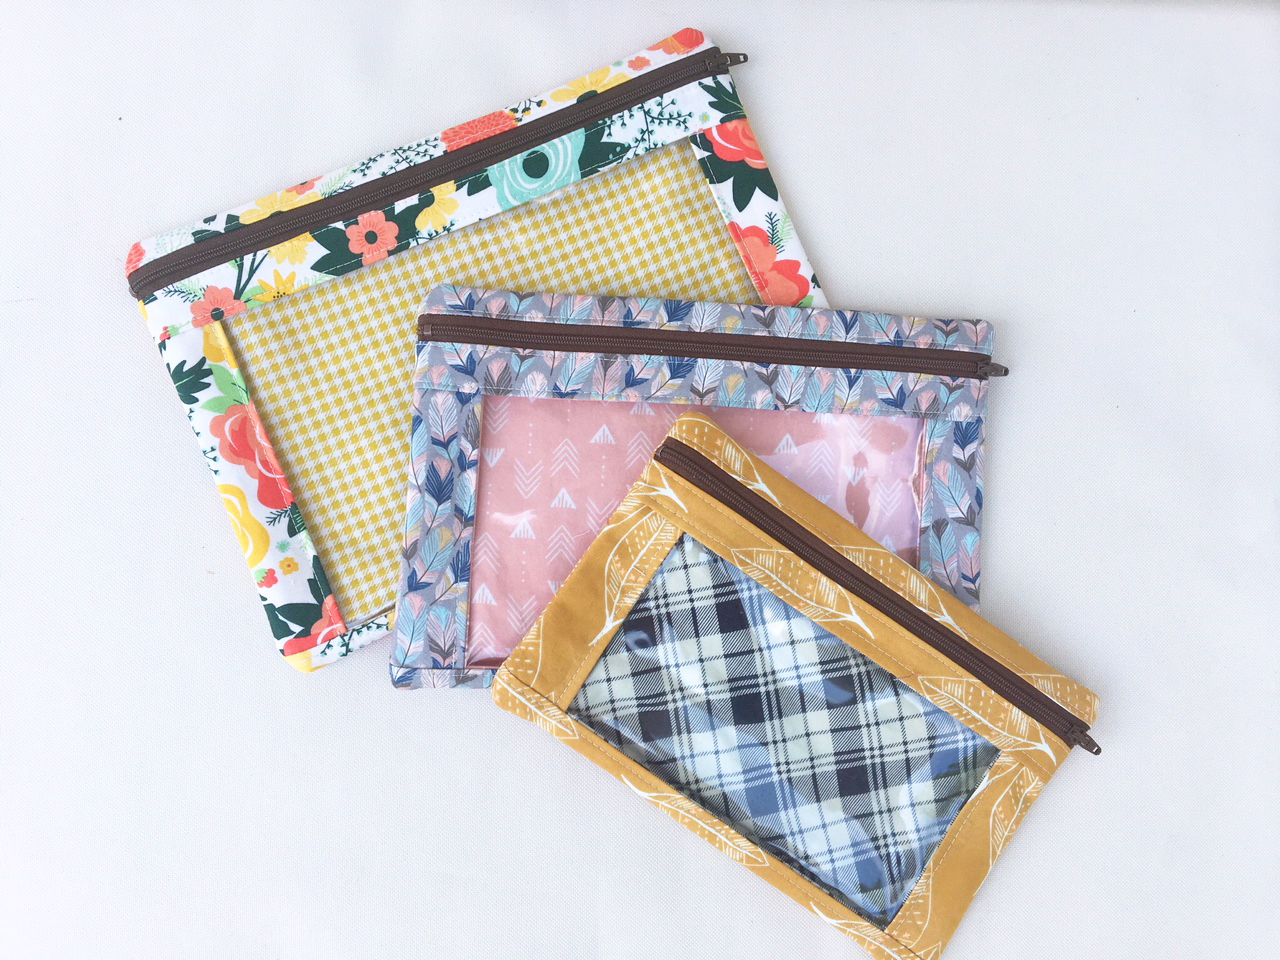 Sew Sweetness Minikins I-Spy Pouches sewing pattern, sewn by Andrea